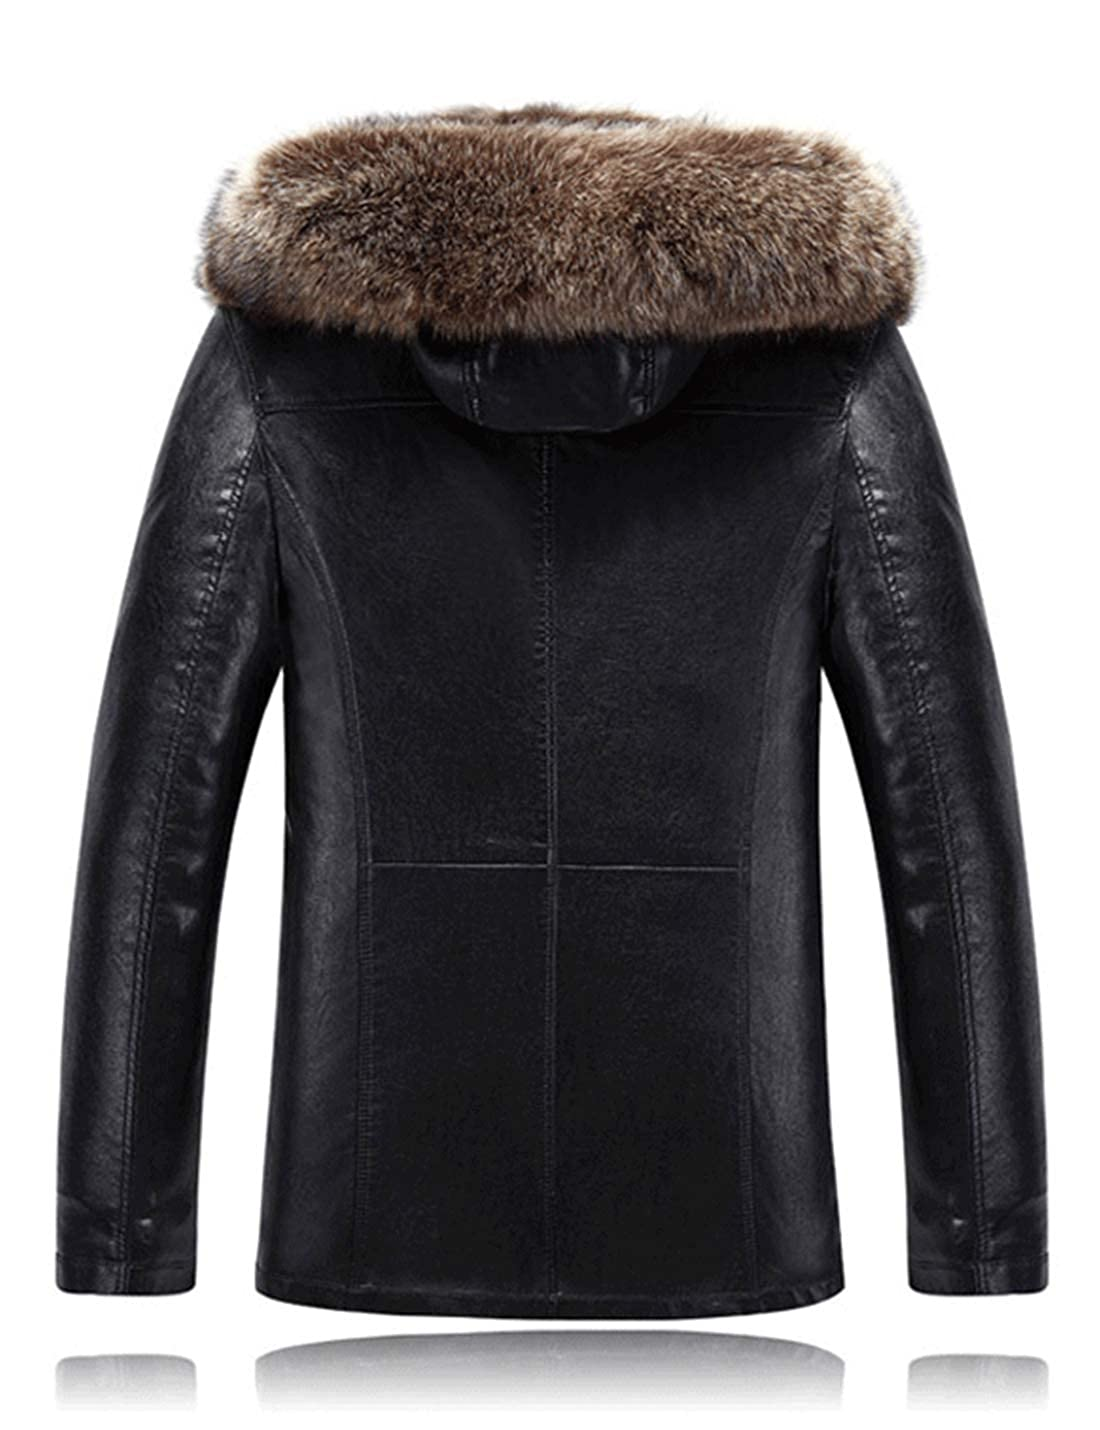 2216c9b1fd2 Tanming Men s Winter Hooded Raccoon Fur Collar Sherpa Lined PU Leather  Jackets at Amazon Men s Clothing store